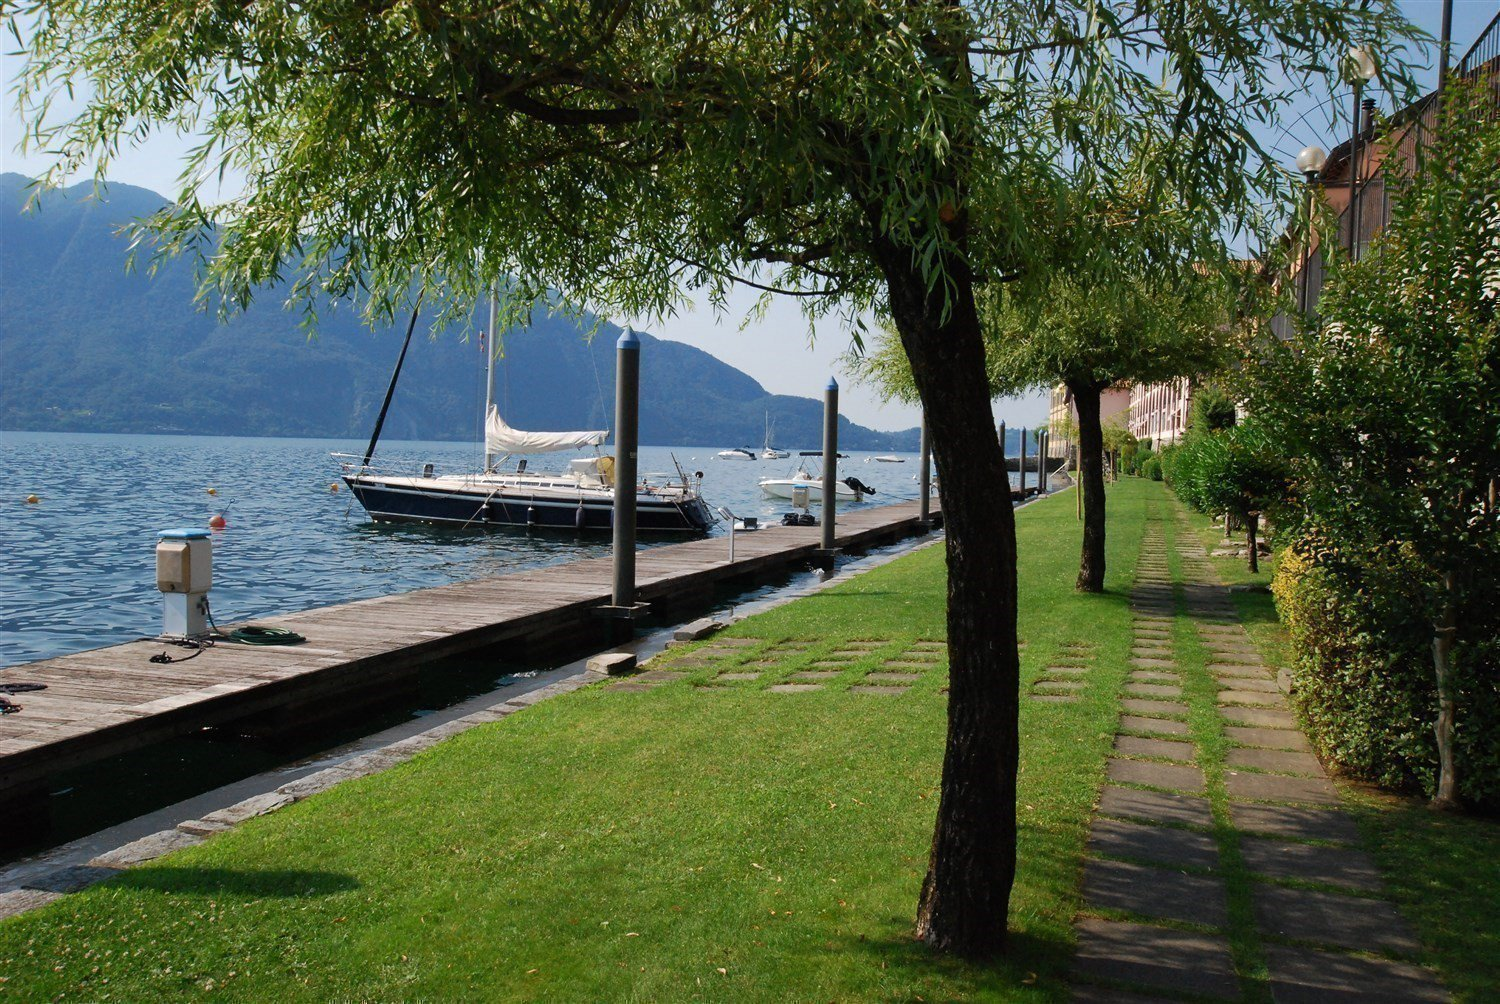 apartment in front of the lake for sale in Ghiffa- garden look out the lake